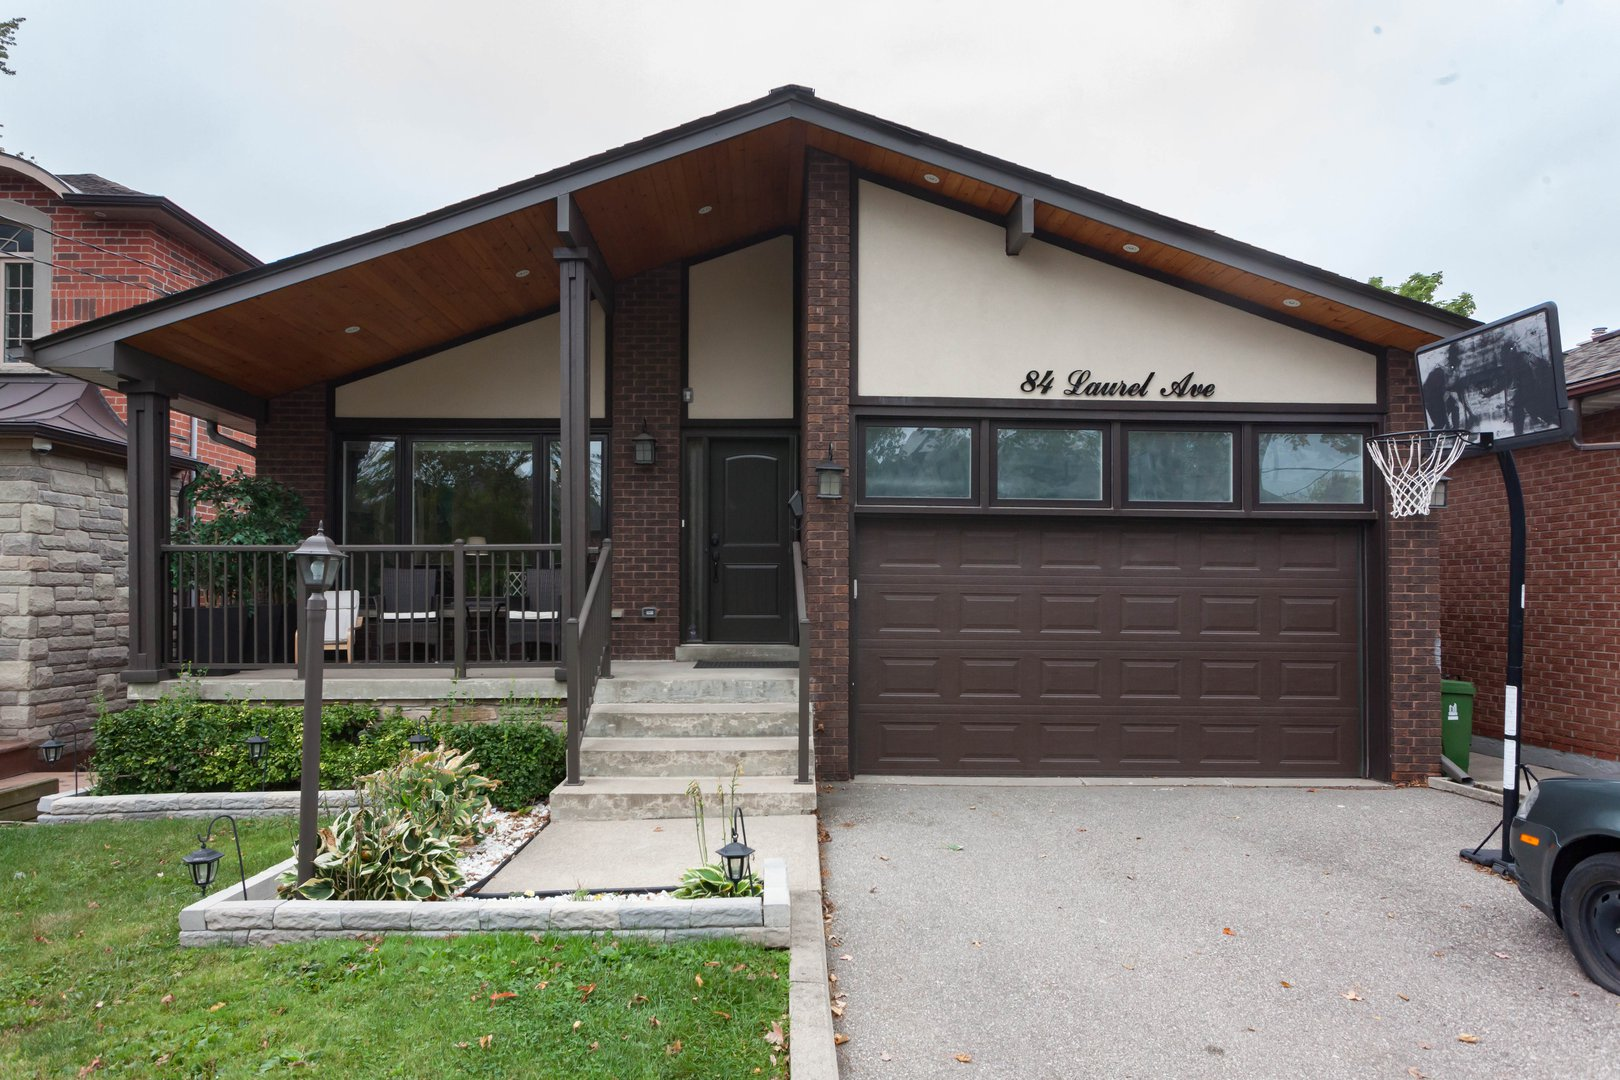 House for rent at 84 Laurel Avenue, Etobicoke, ON in contemporary style. This is the front of the house with lawn.